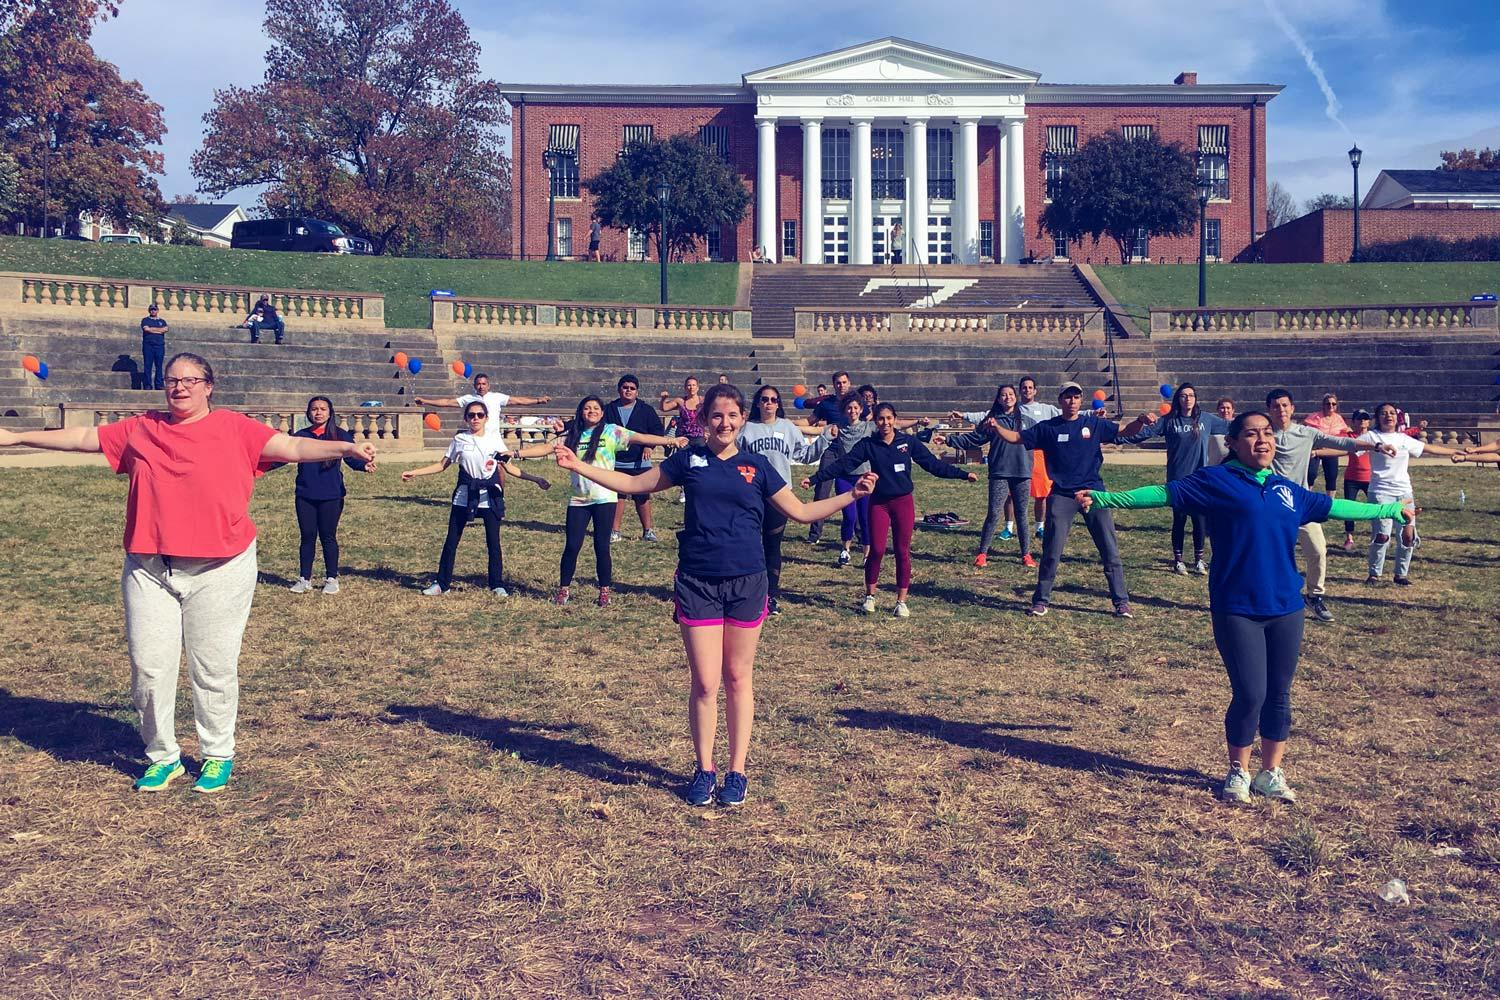 In October, UVA hosted a Zumba marathon on Grounds for the local Latino community. It was led by Corinne Lascala, a local instructor.